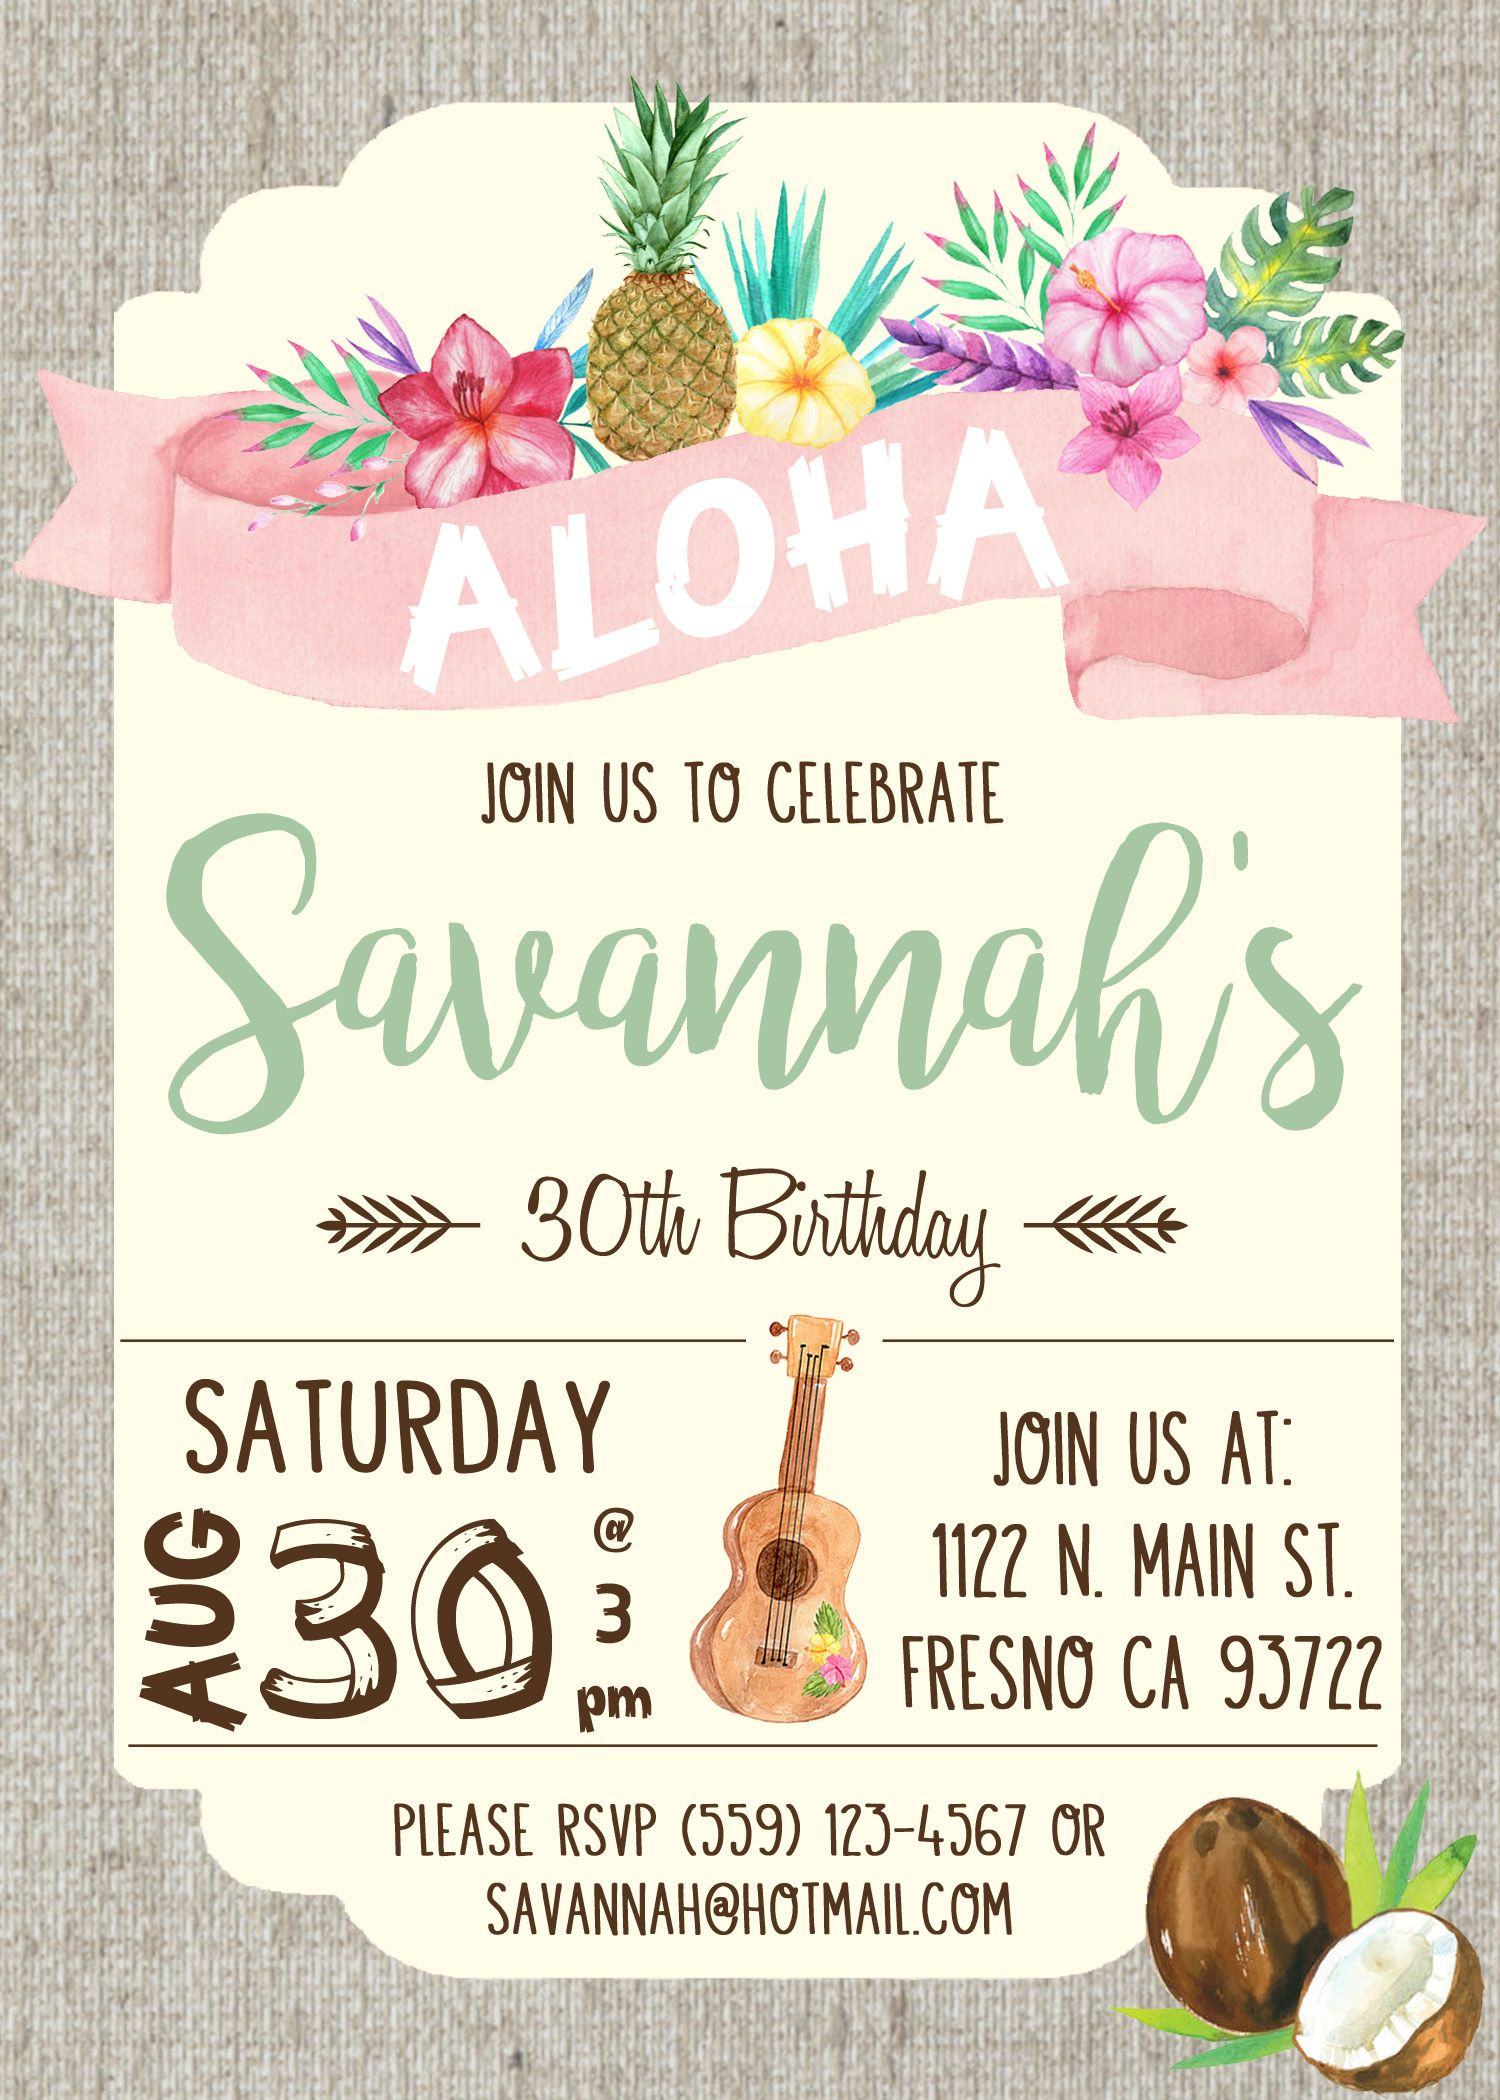 Hawaiian Luau Birthday Party Invitation Invite Watercolor Flowers – Flower Party Invitations